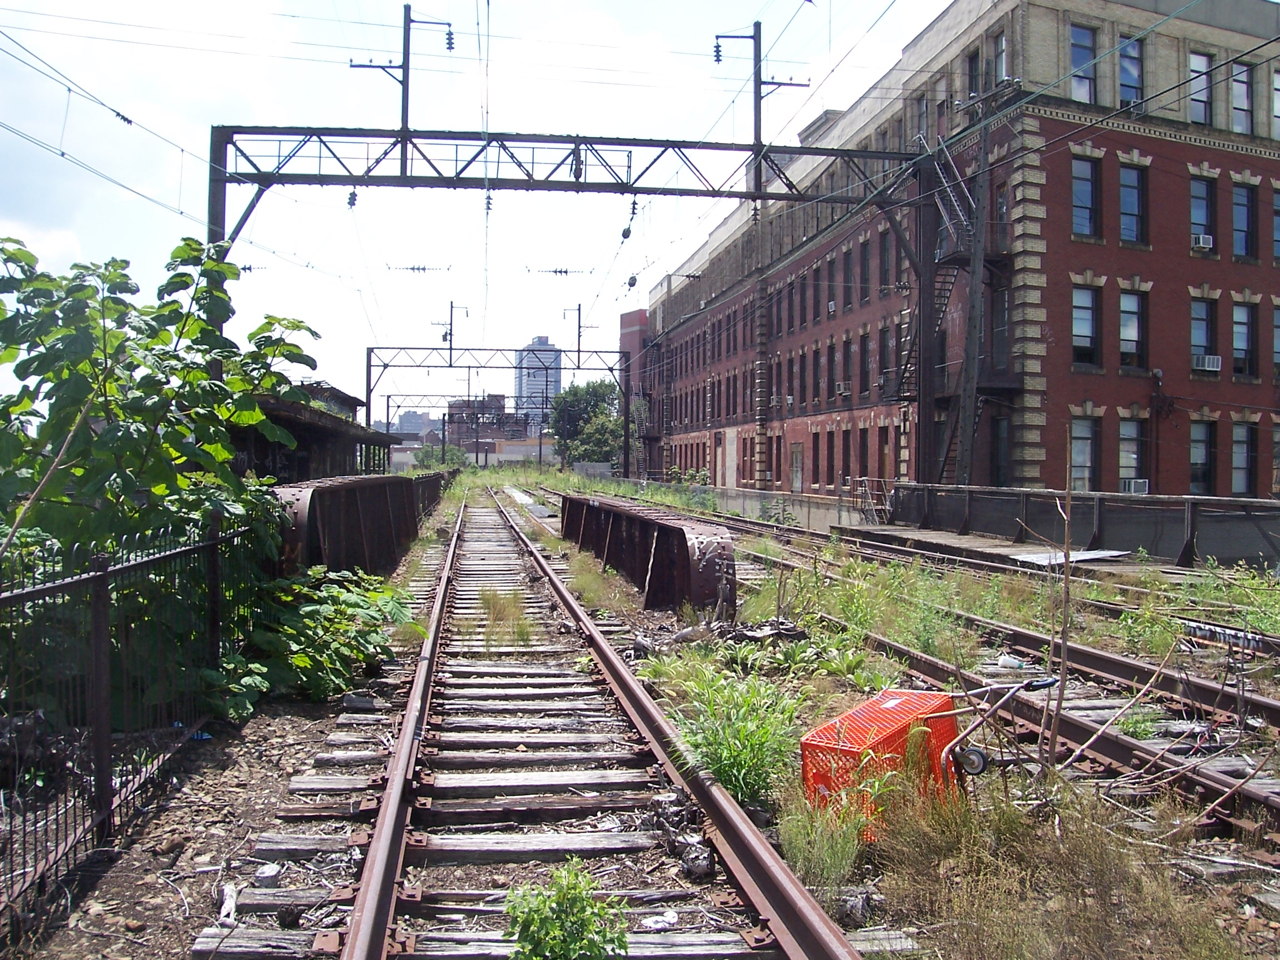 View from atop the vacant Reading Viaduct at around 10th and Spring Garden Streets